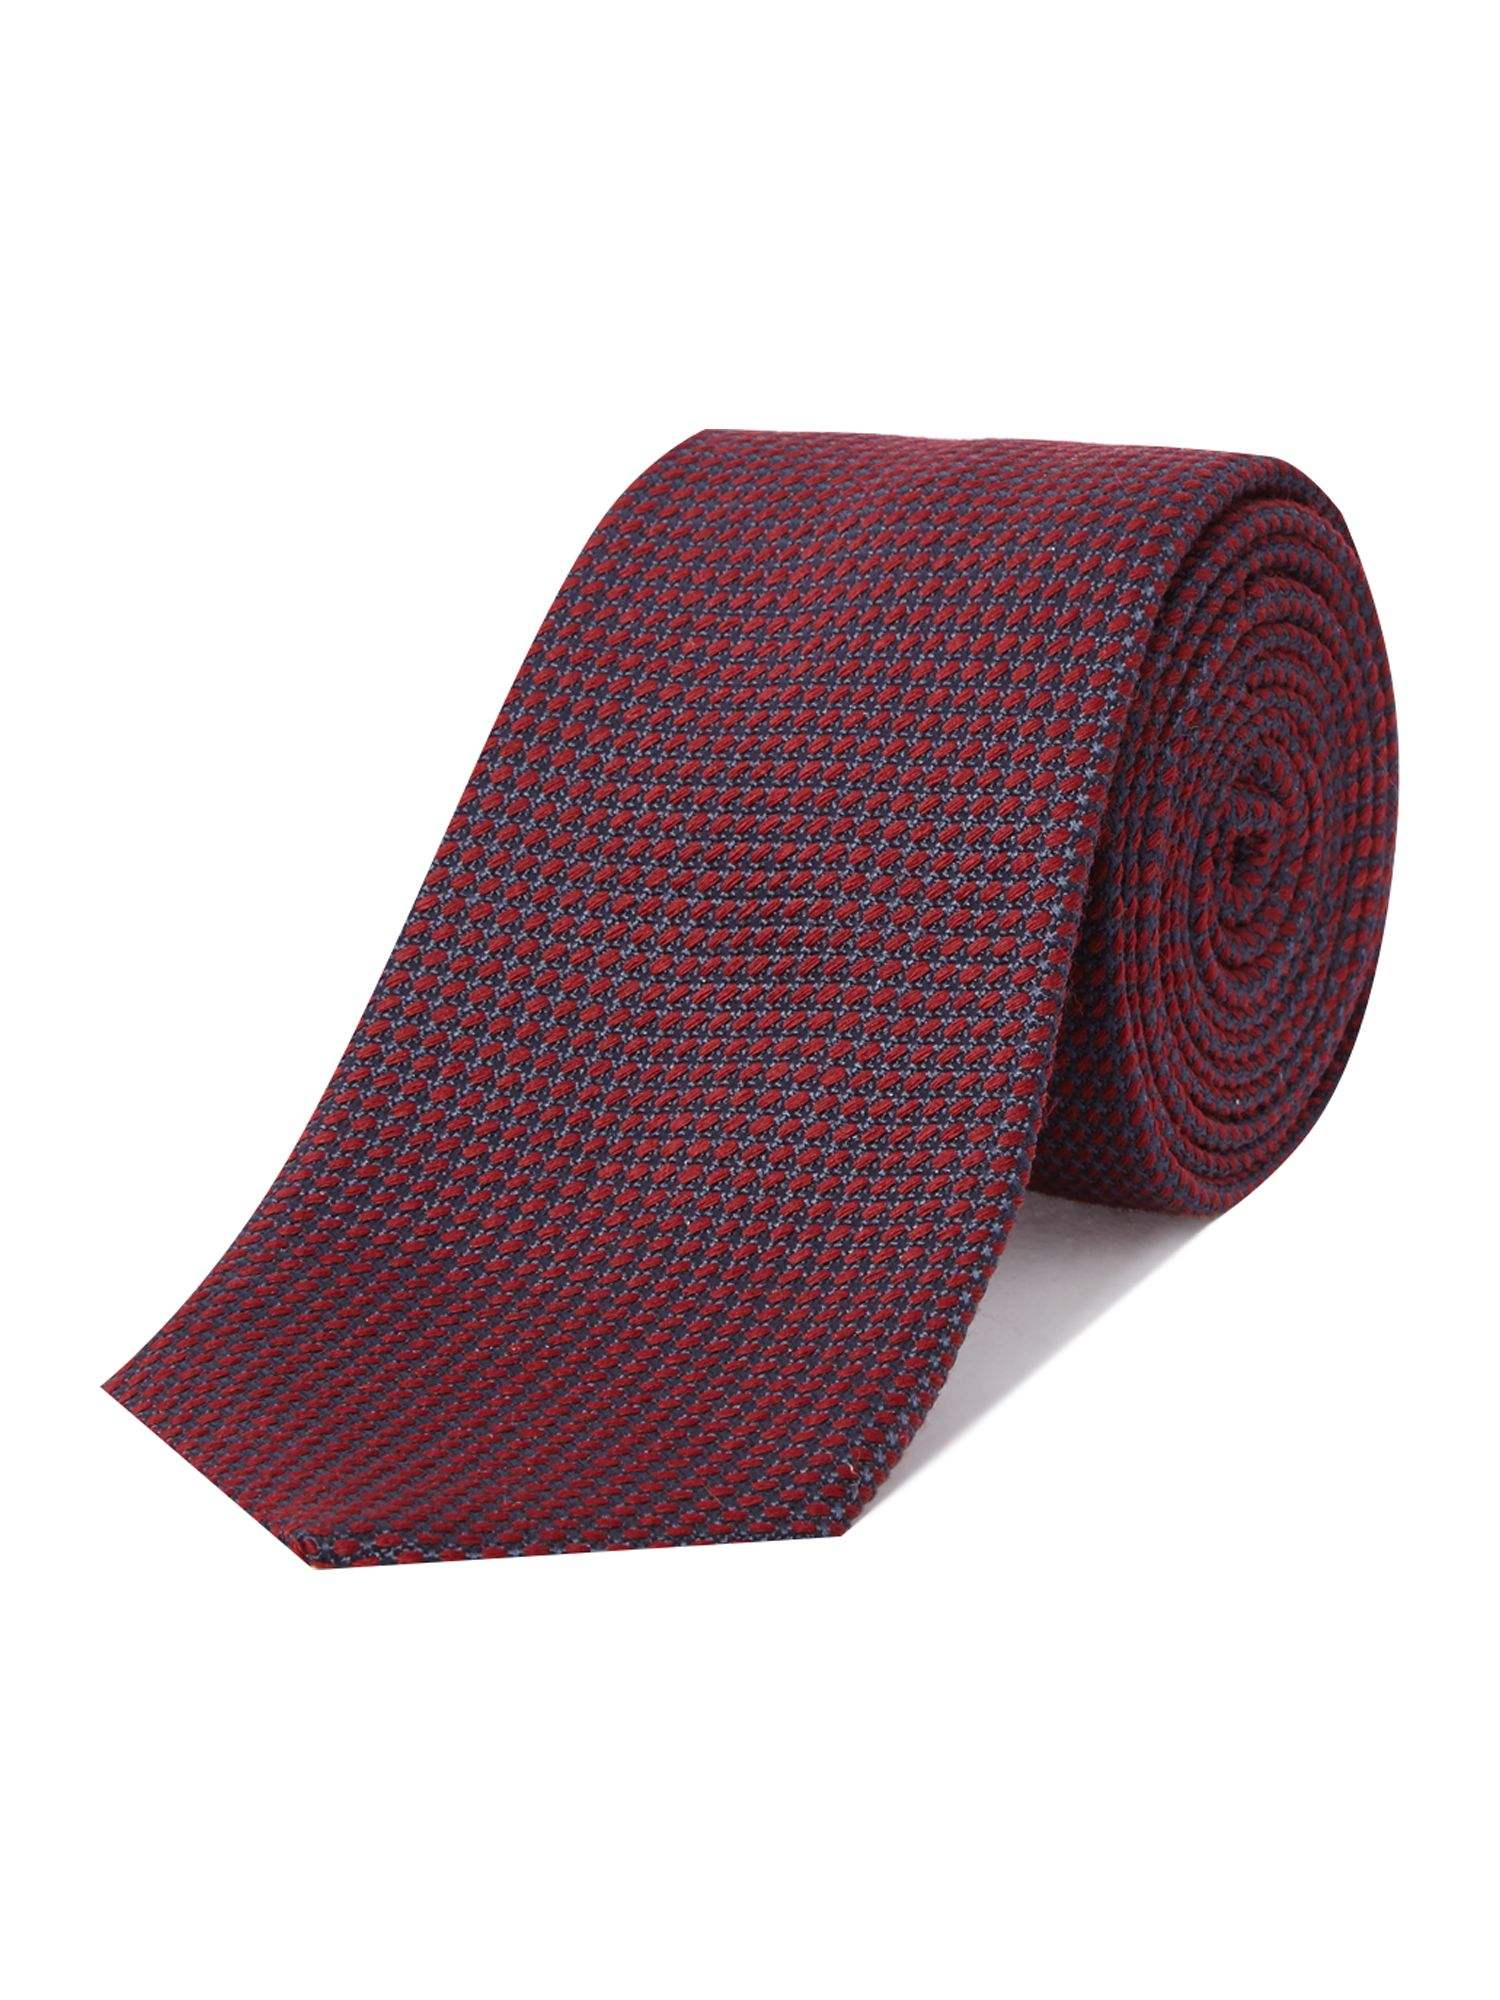 Damaso silk & wool textured tie